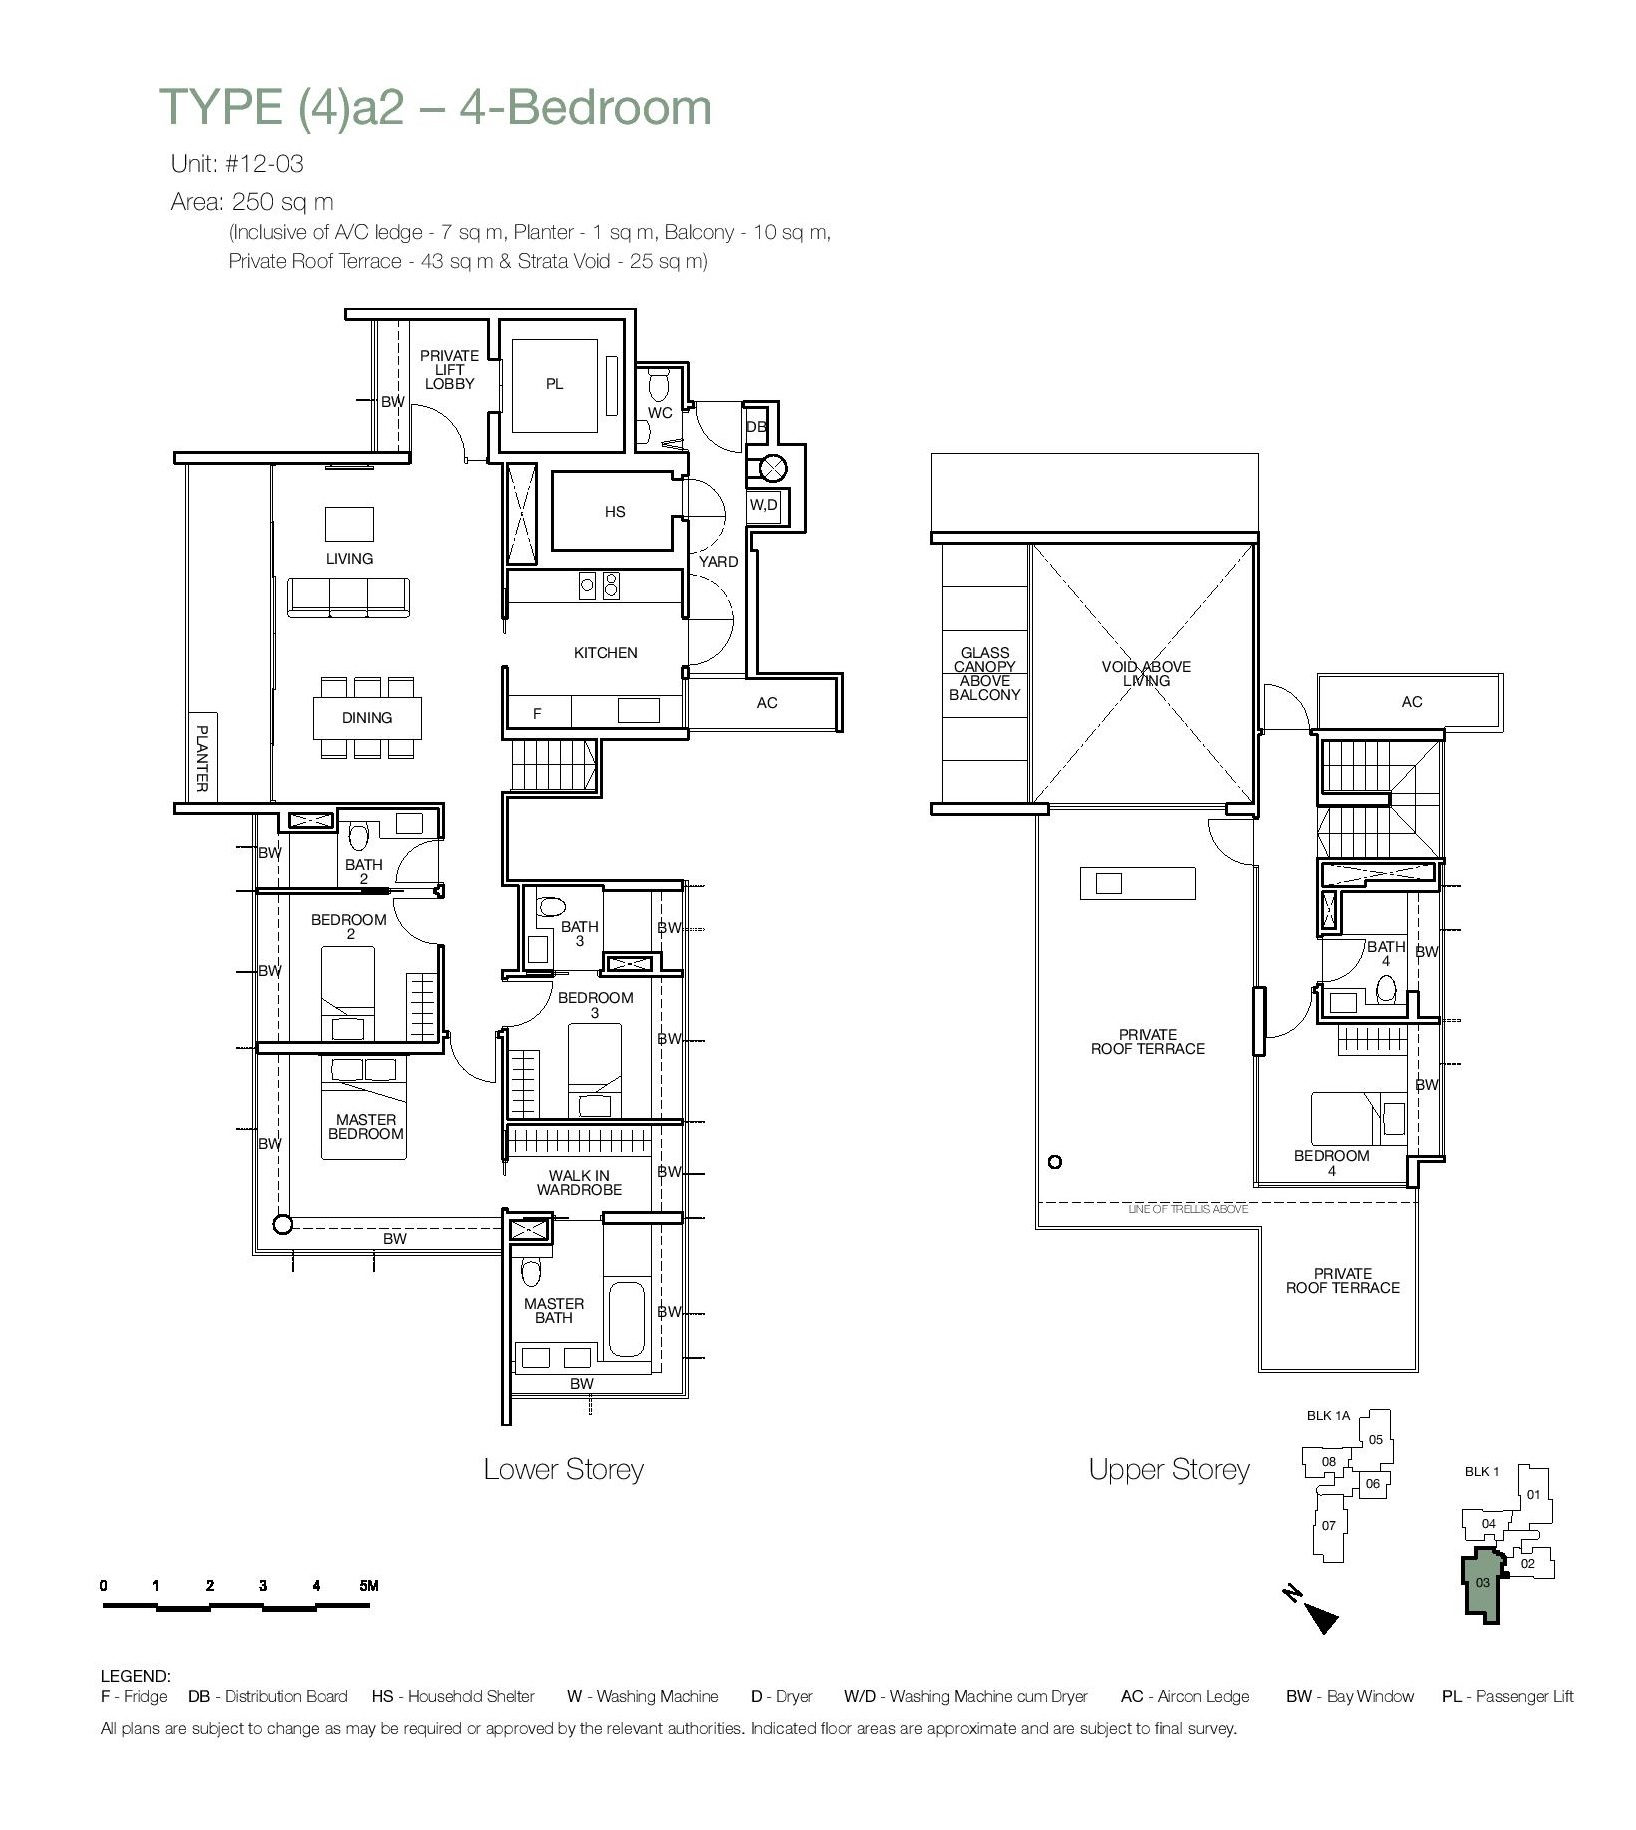 One Balmoral 4 Bedroom Roof Terrace Floor Type (4)a2 Plans